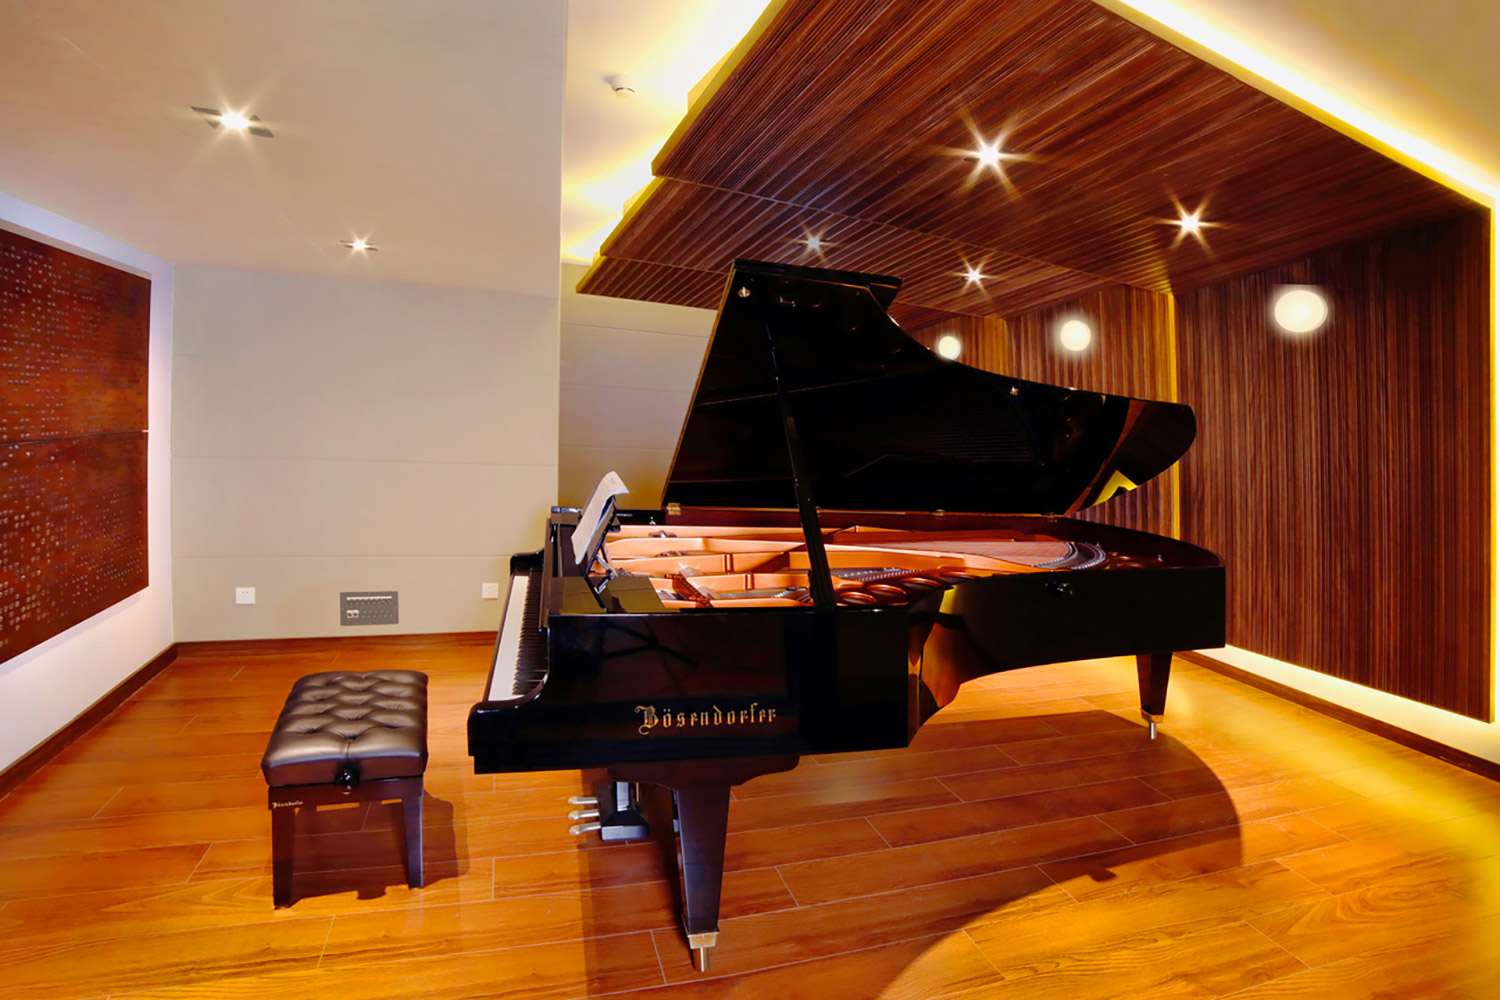 Zhejiang Conservatory of Music in Hangzhou, East China commissioned WSDG to create an important addition to this extraordinary institution, a 21st Century Music Production & Education Complex. Boutique ISO Booth with Piano.